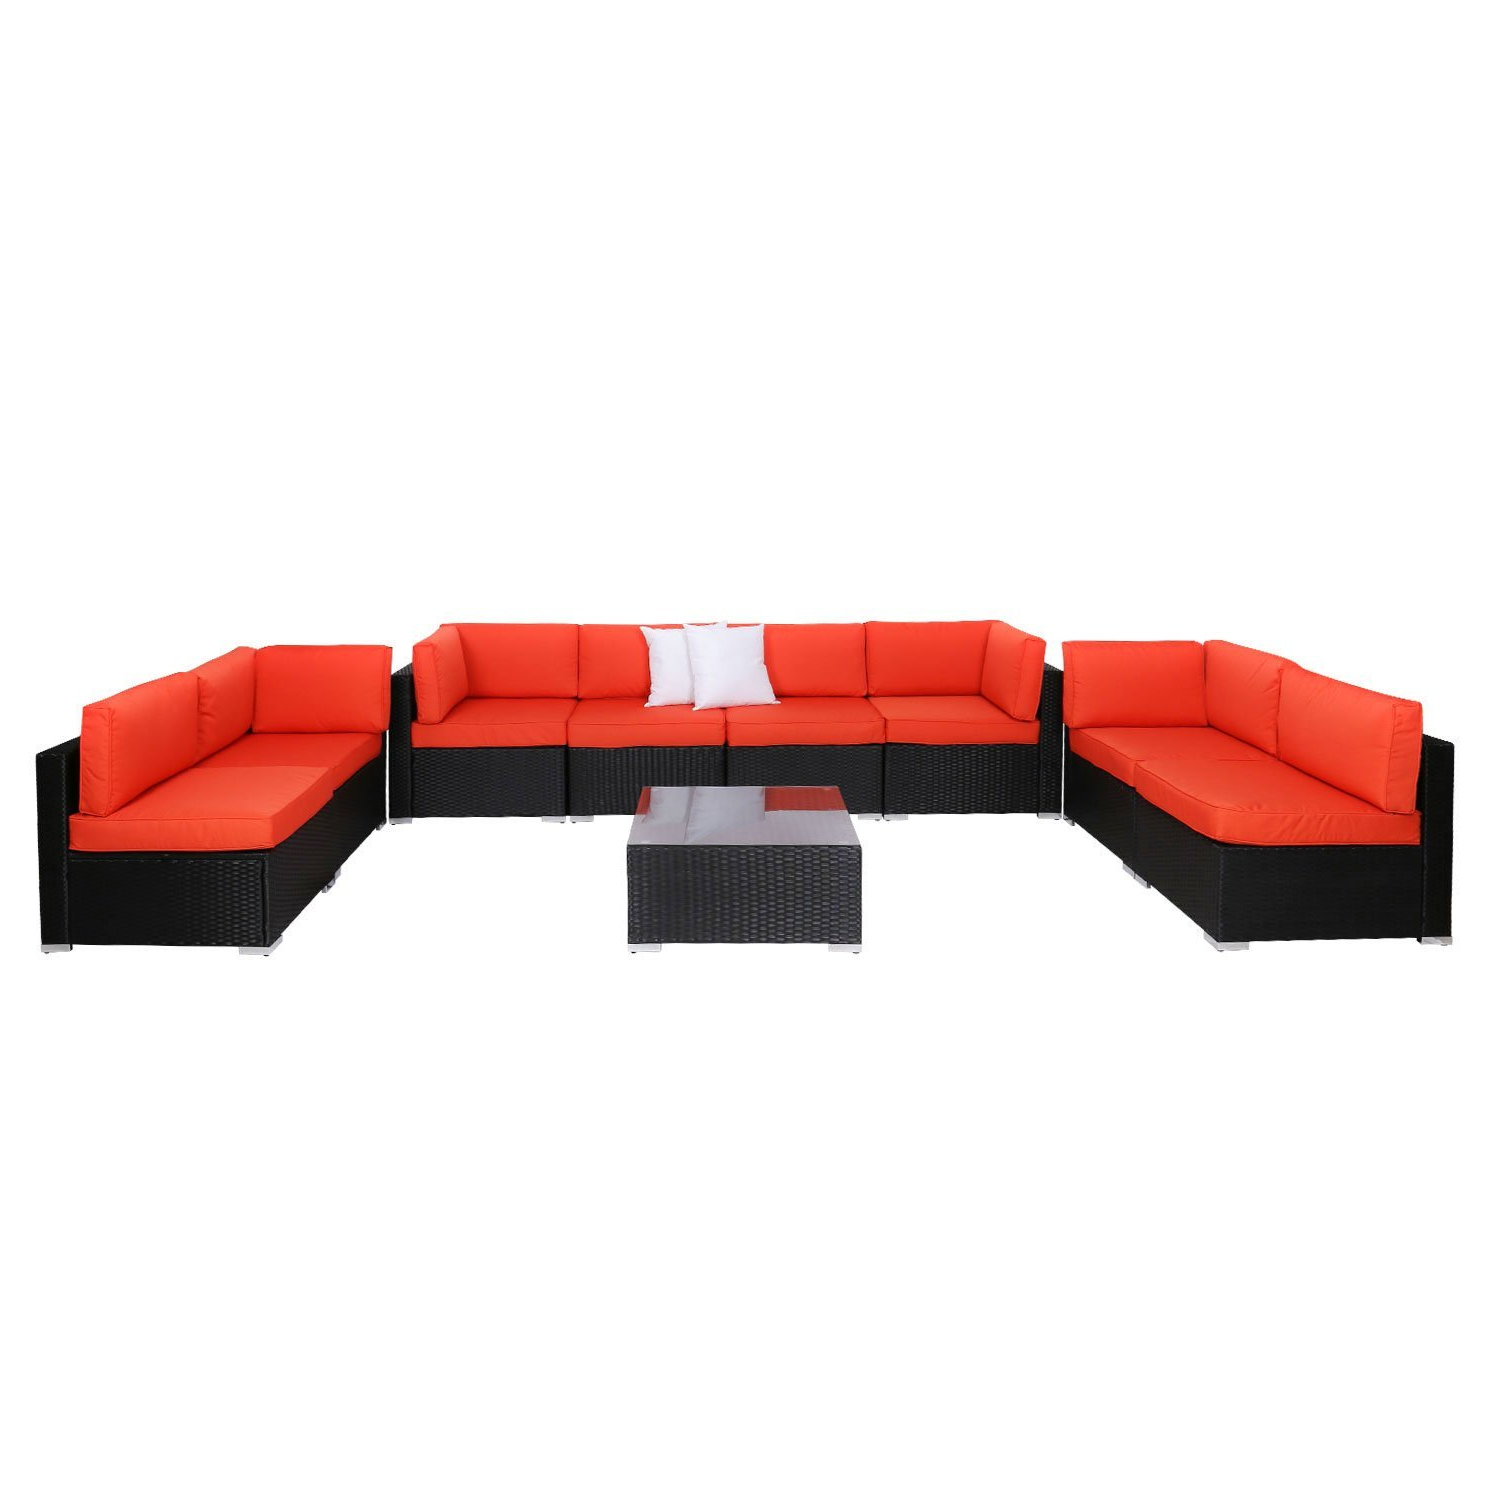 Best And Newest Cheap Ashley Furniture Sectional Sofas, Find Ashley Furniture Pertaining To Delano 2 Piece Sectionals With Laf Oversized Chaise (View 18 of 20)